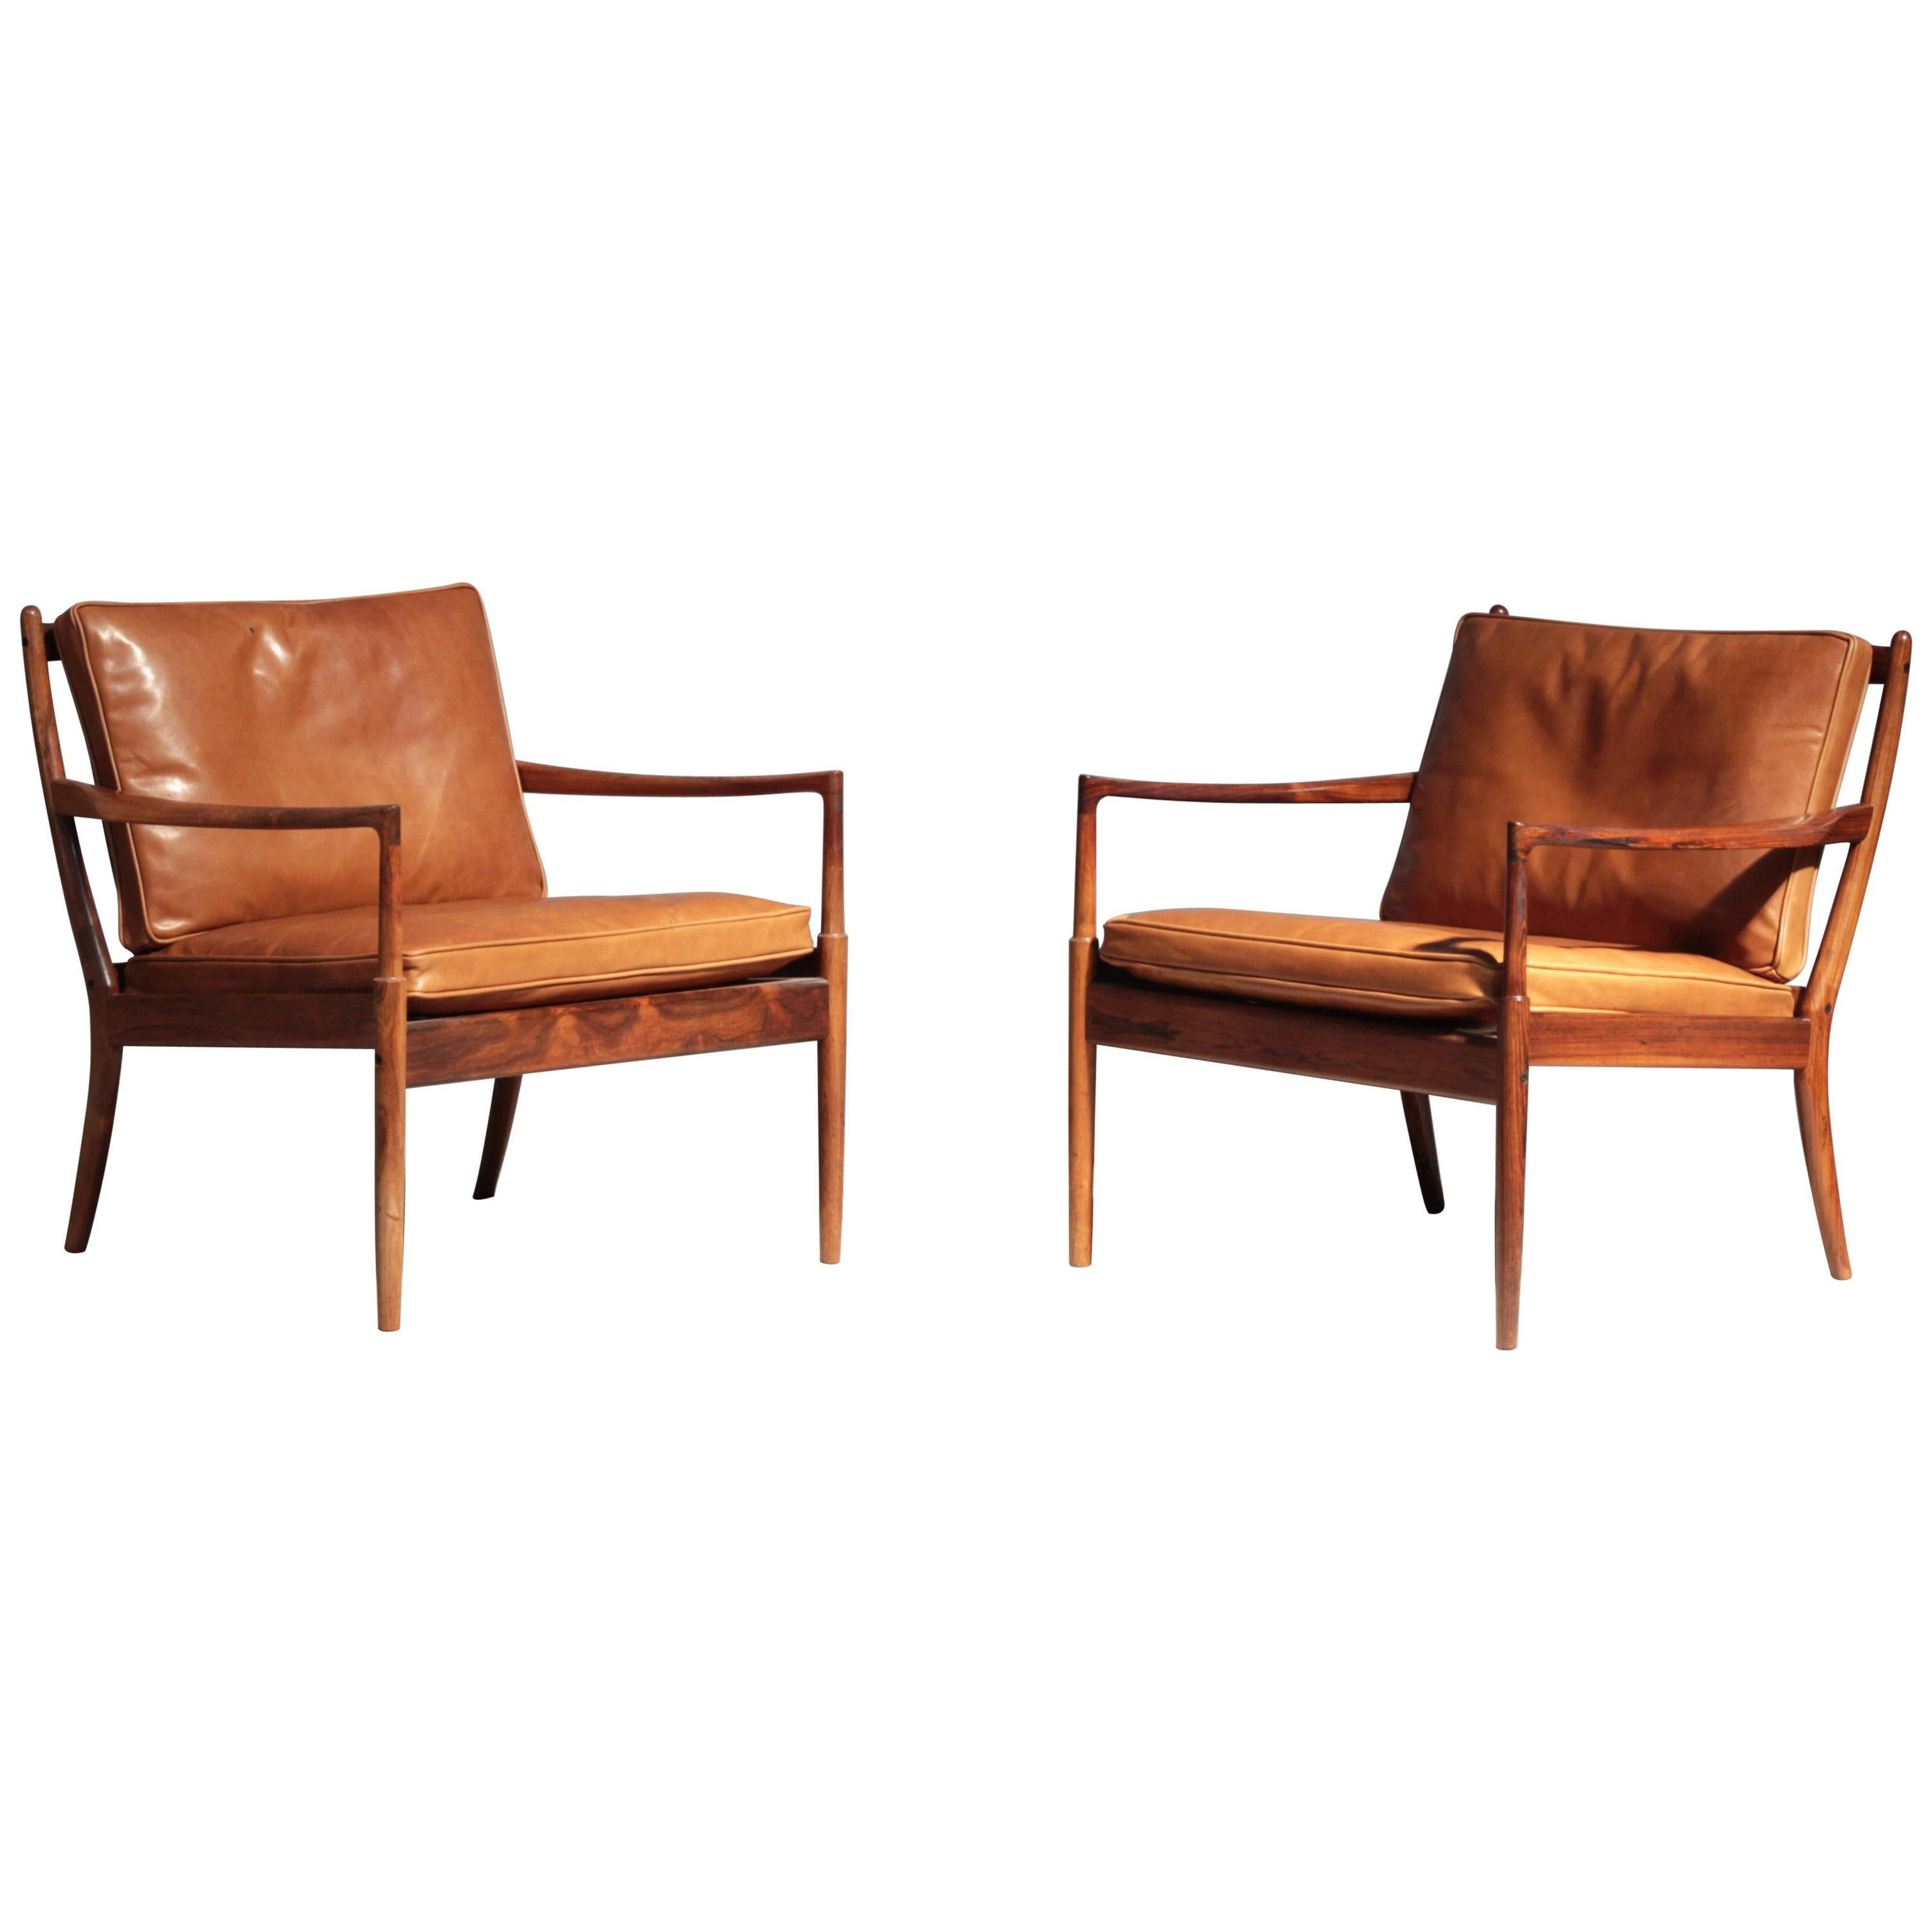 Pair of Lounge Chairs Mod. Samsö by Ib Kofod Larsen for OPE, Sweden, 1960s